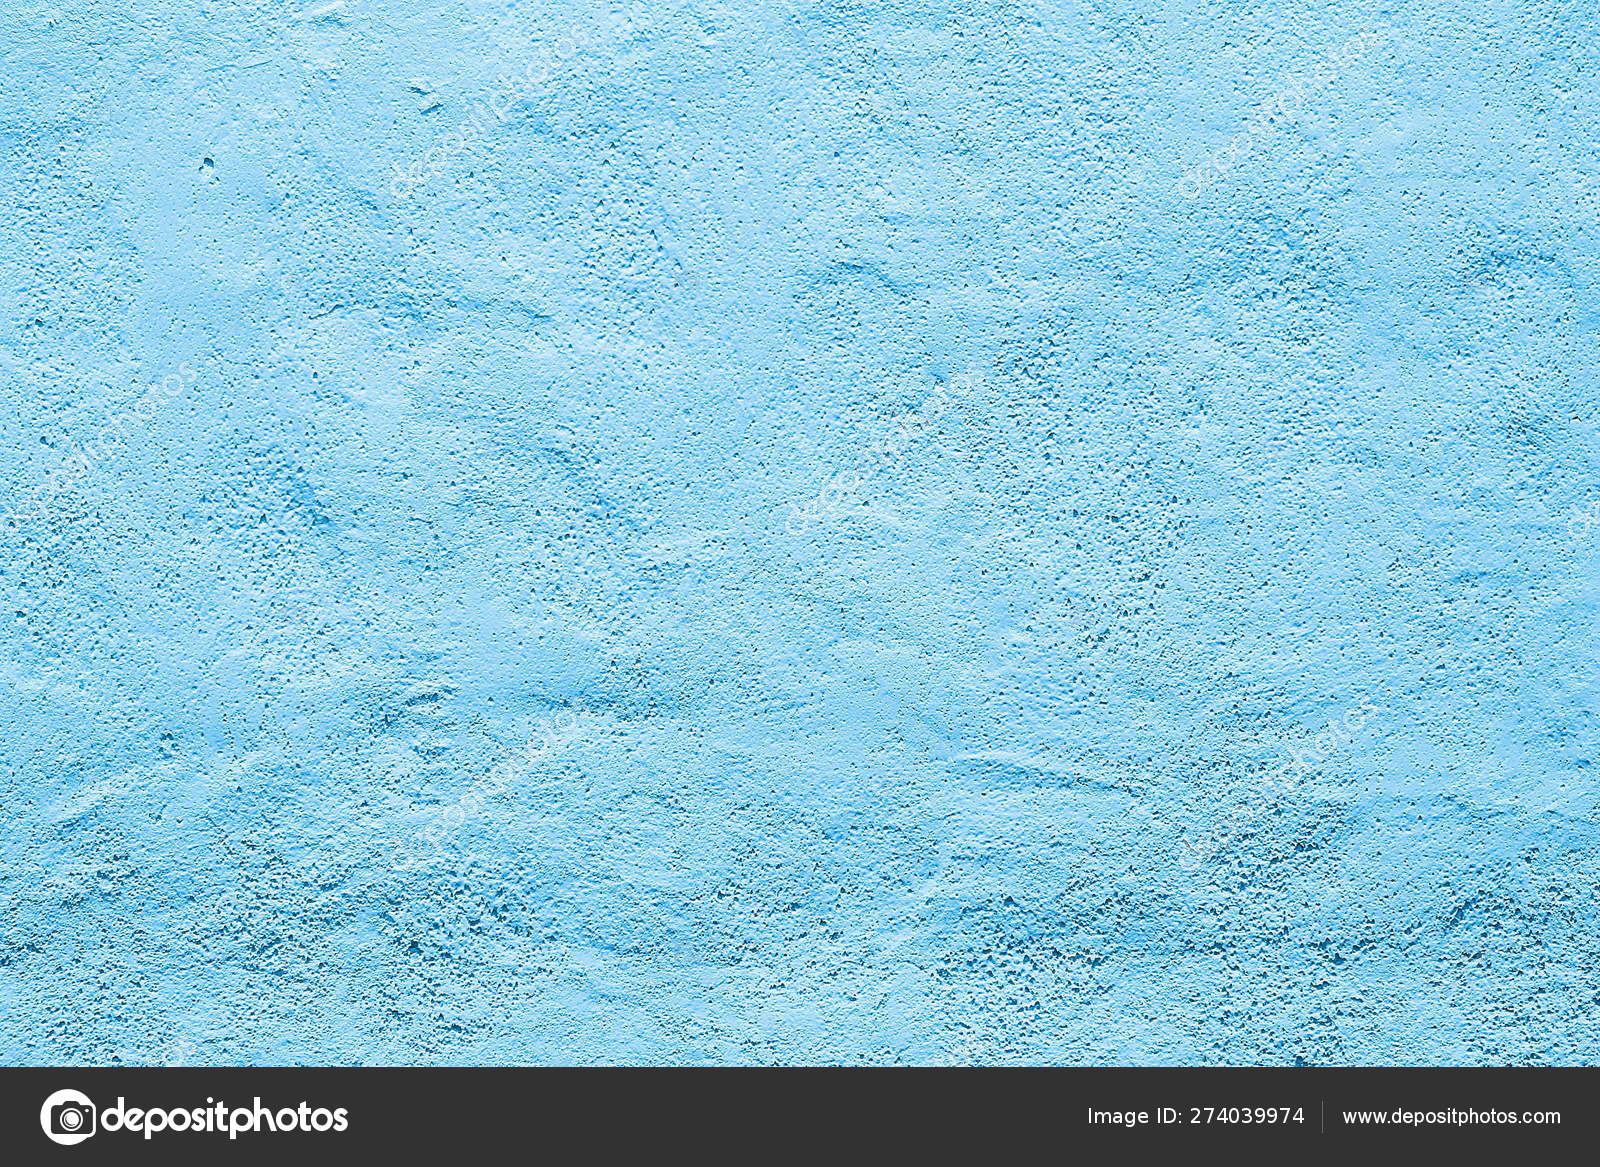 The wall plaster painted blue color textured